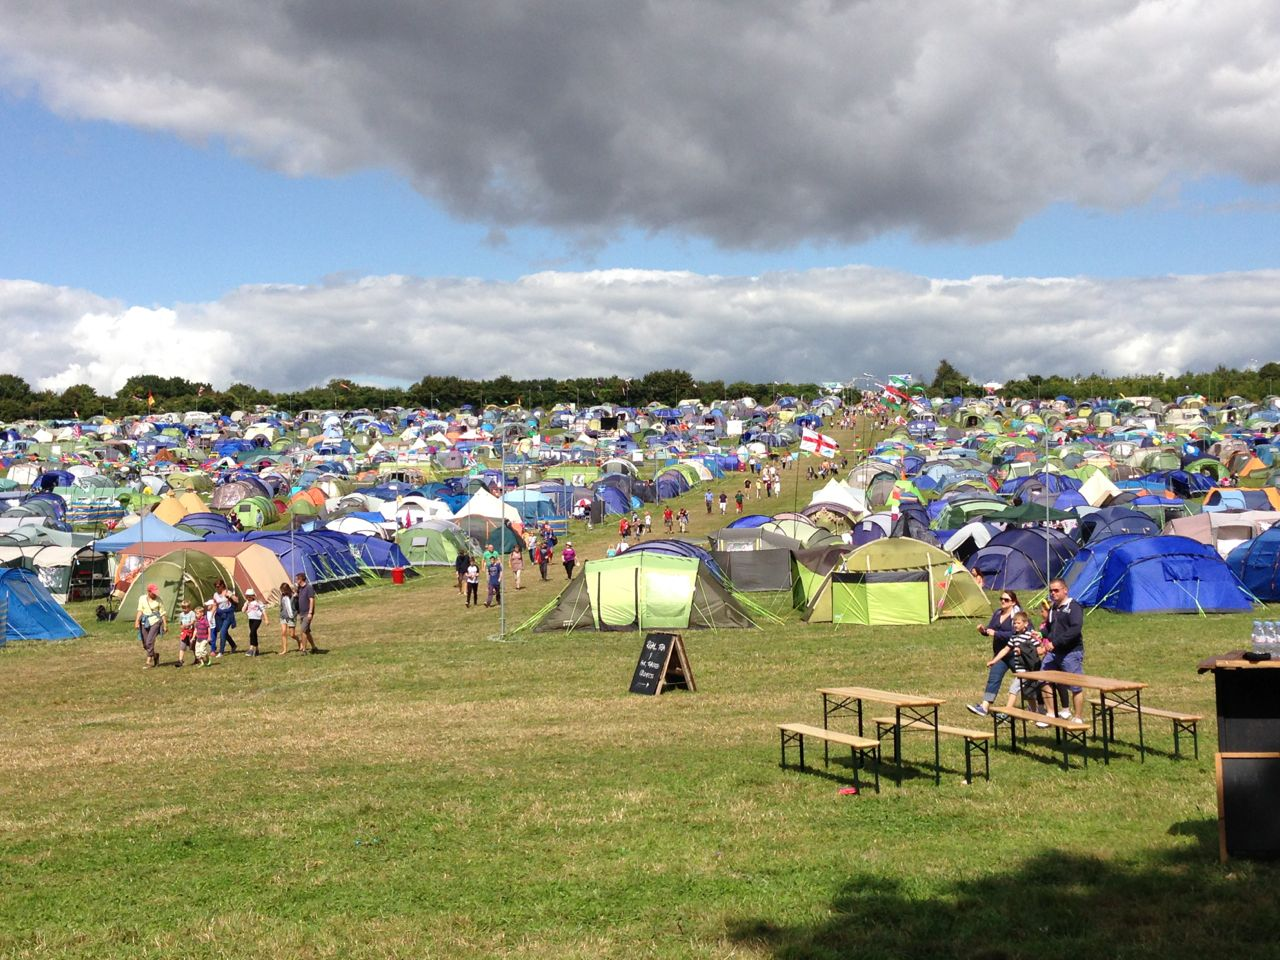 Camping at Carfest South